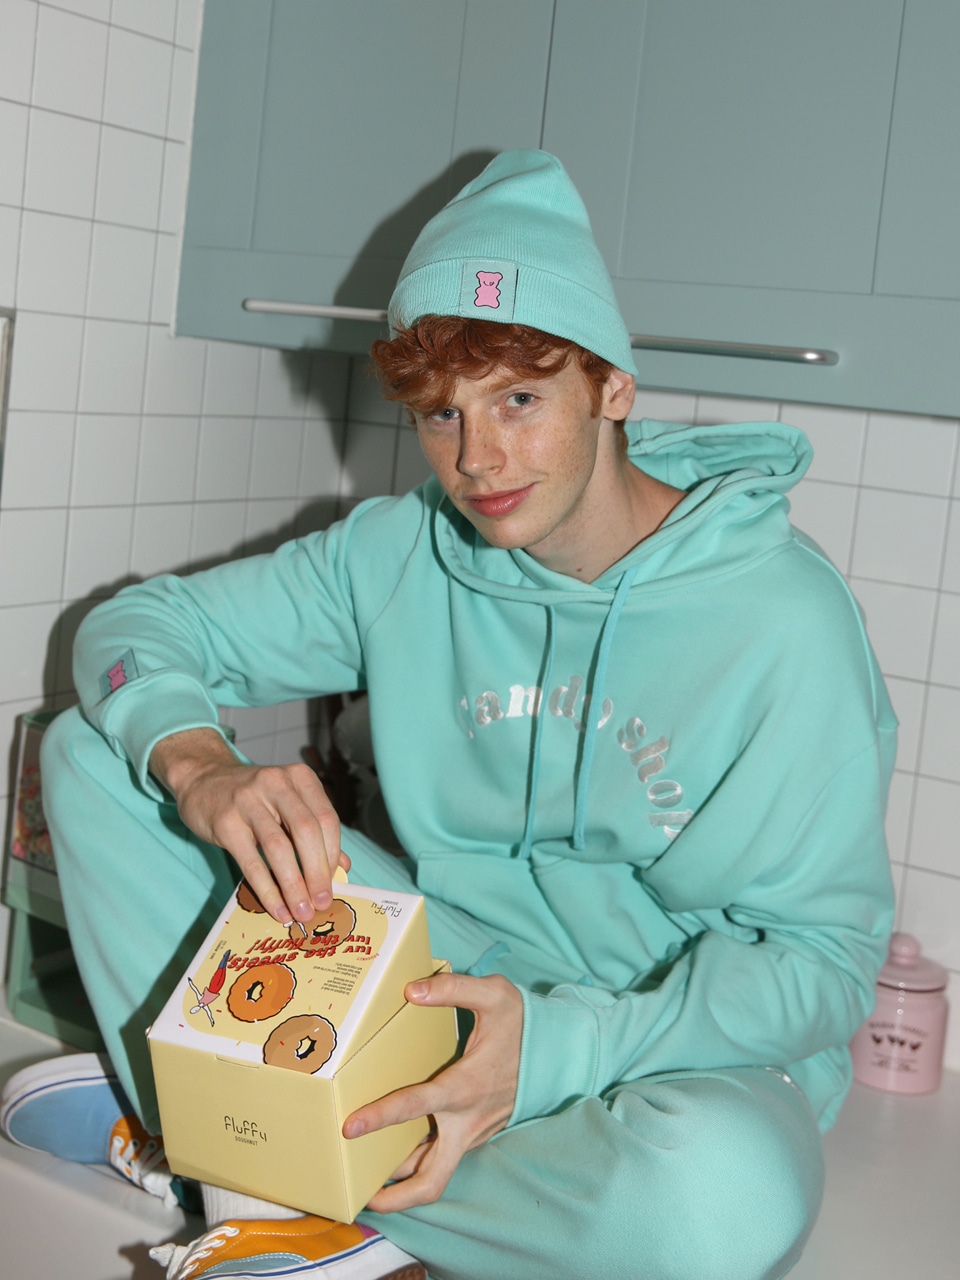 [10%SALE] Candy shop logo hood - MINT